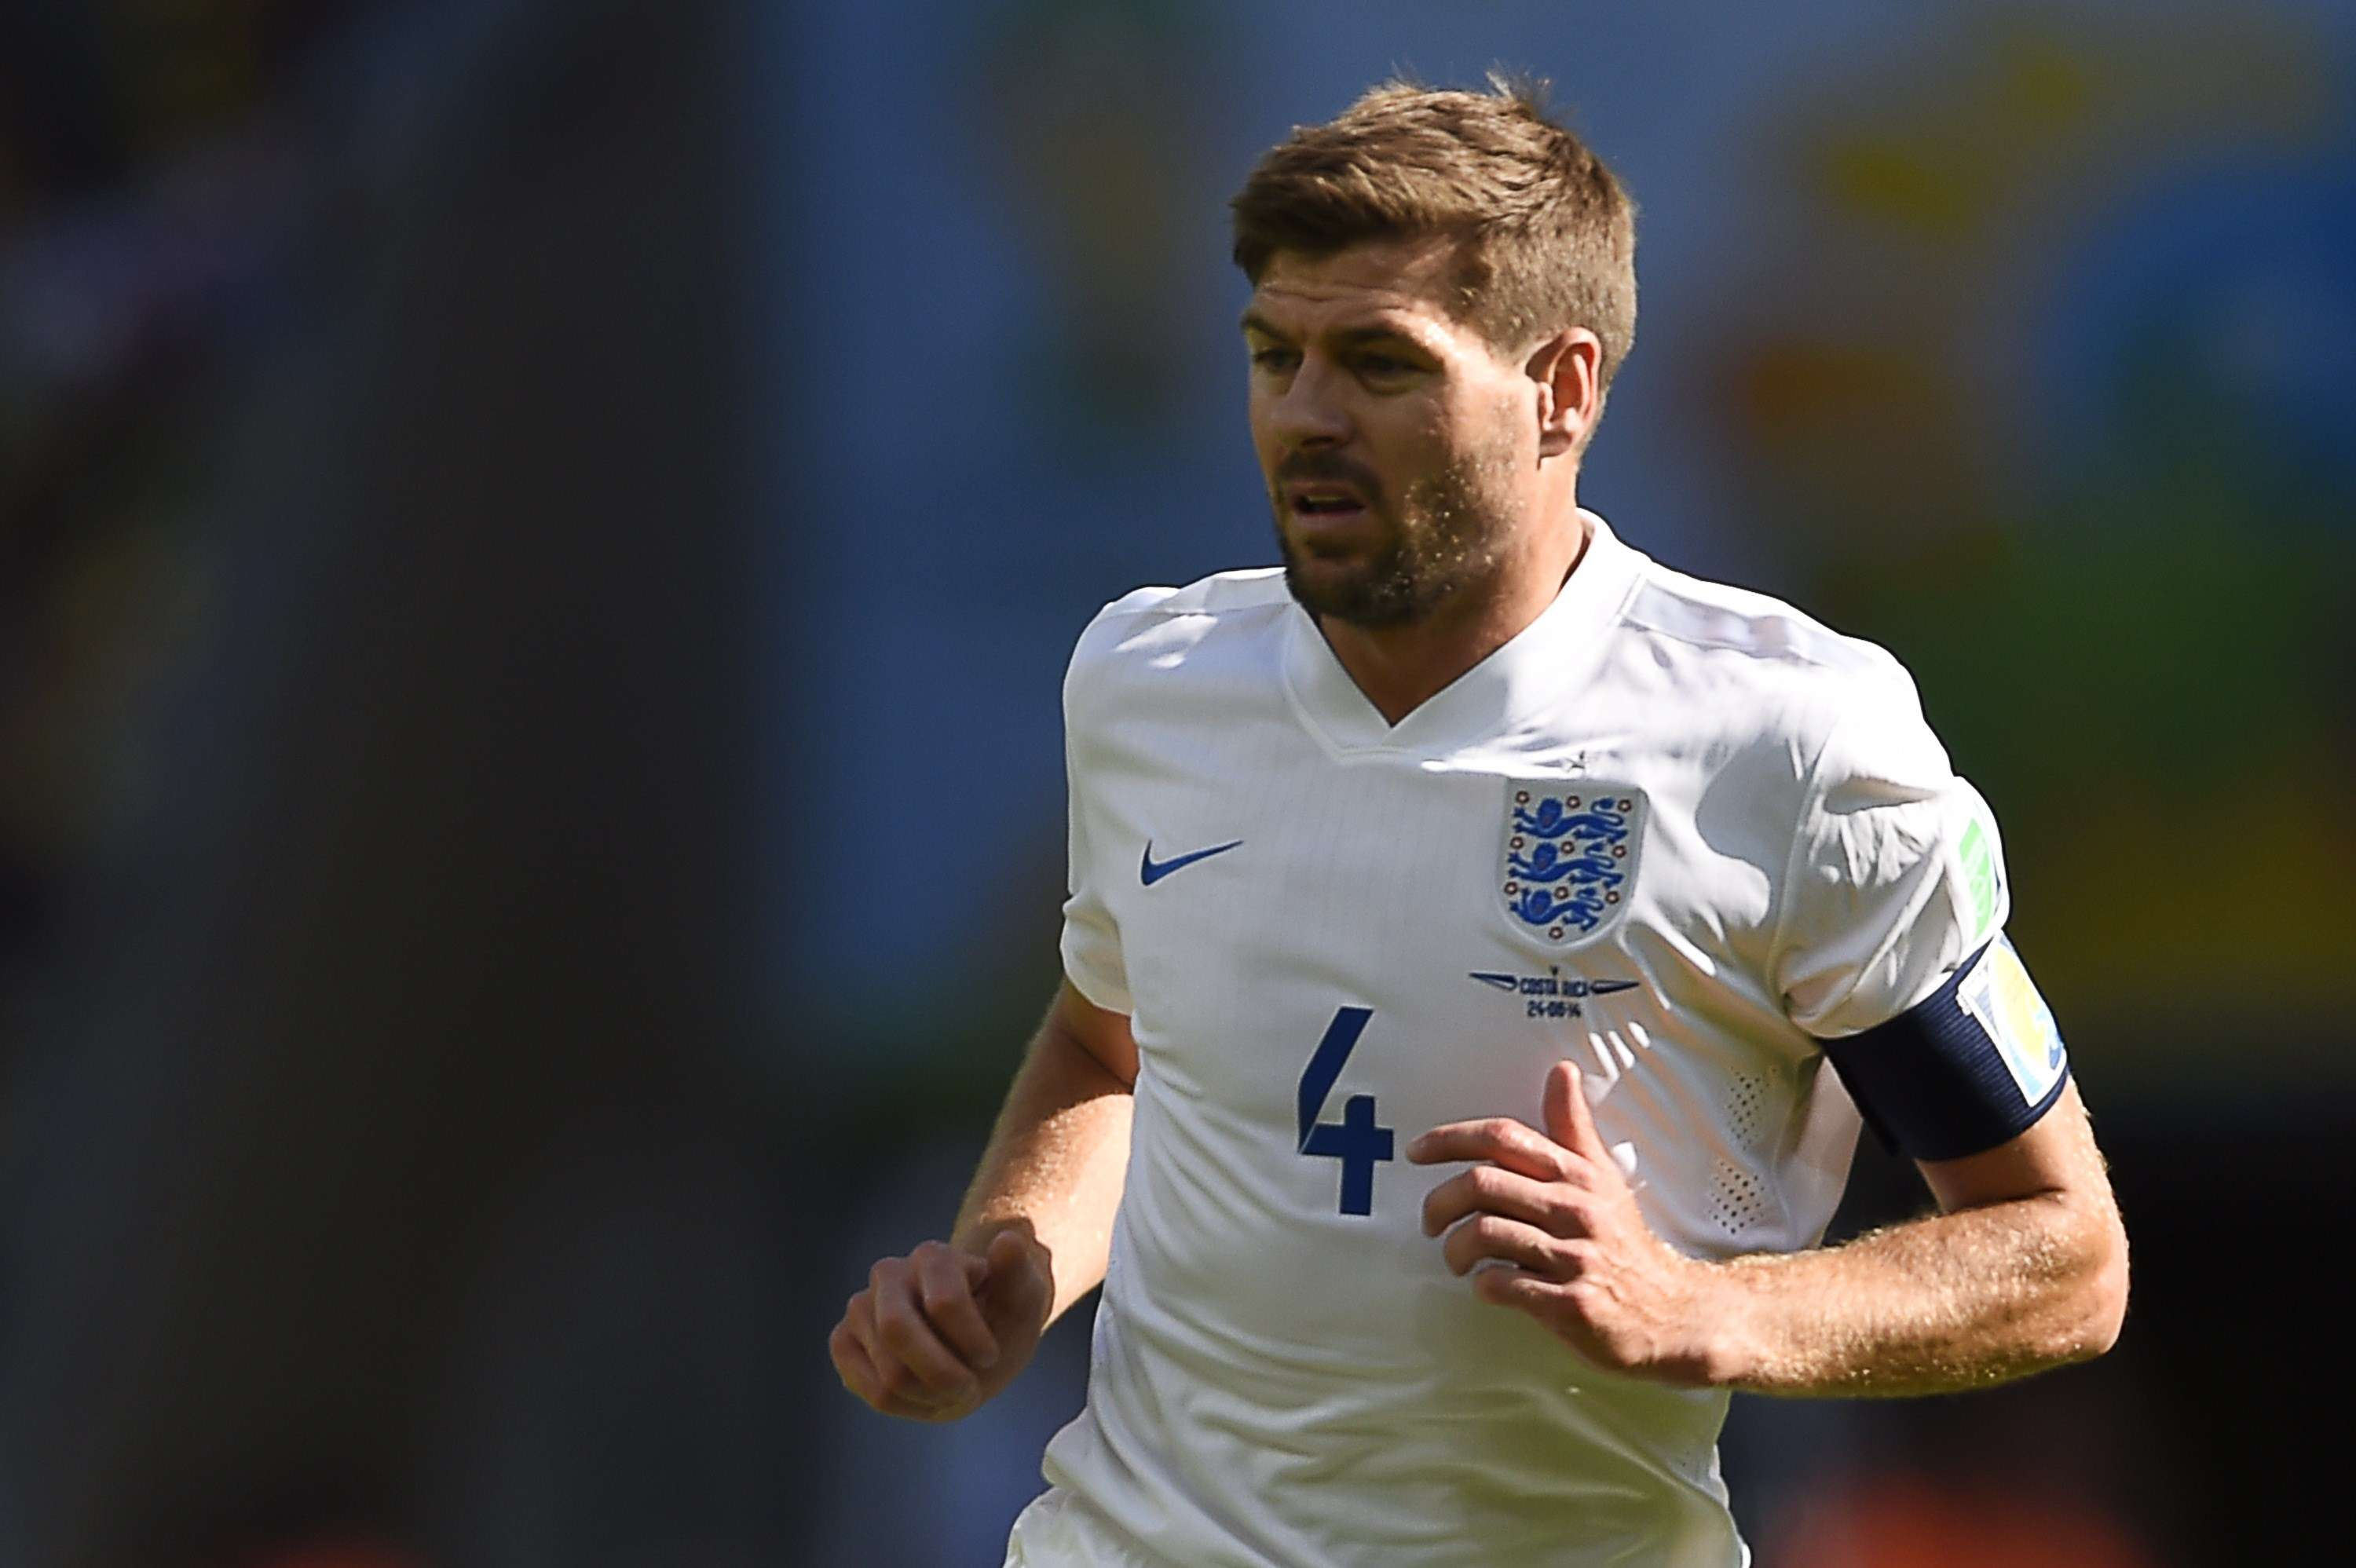 Gerrard retires from international soccer